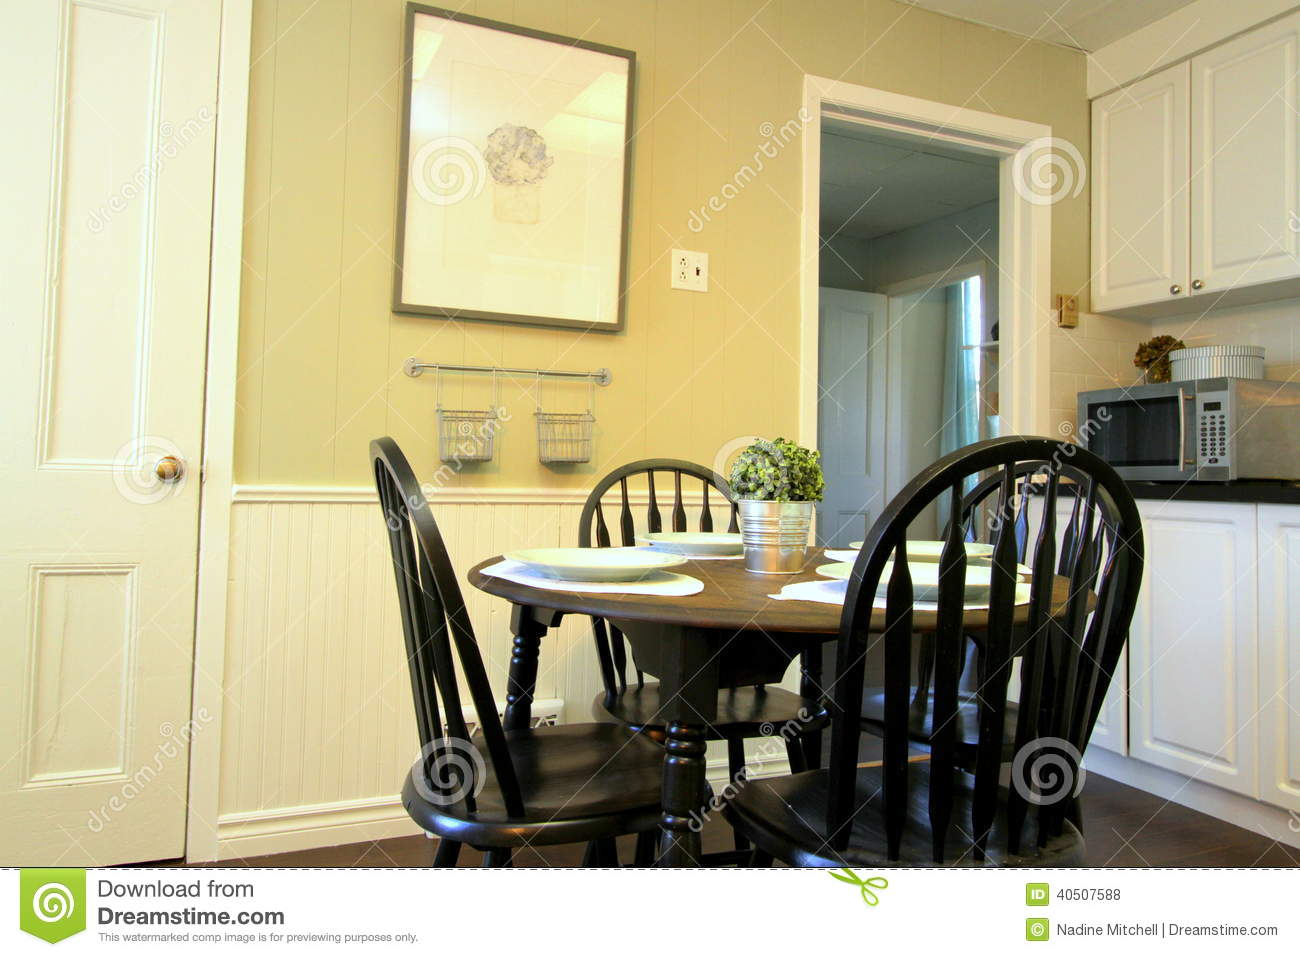 Kitchen With White Cabinets And Round Table And Chairs